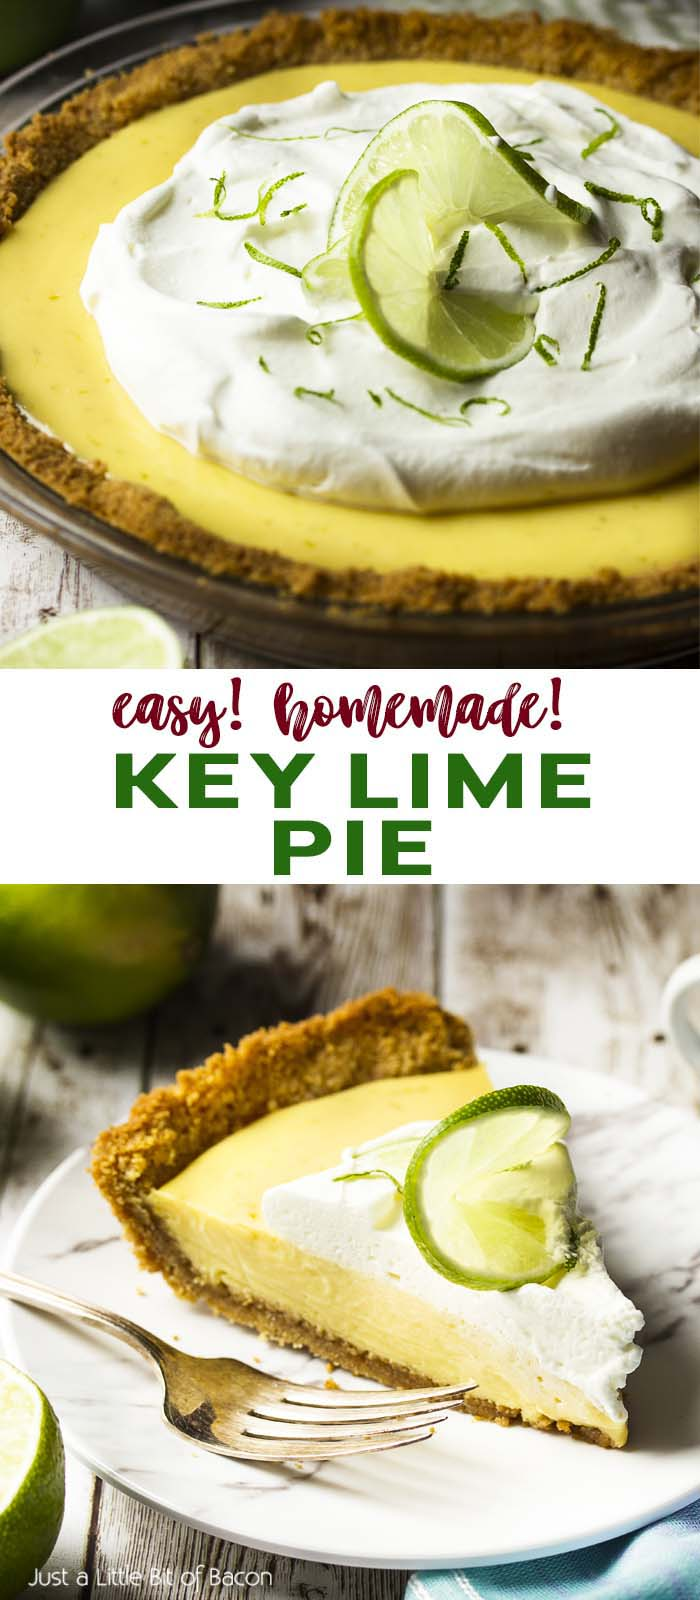 Whole pie and a slice on a small plate with text overlay - Key Lime Pie.